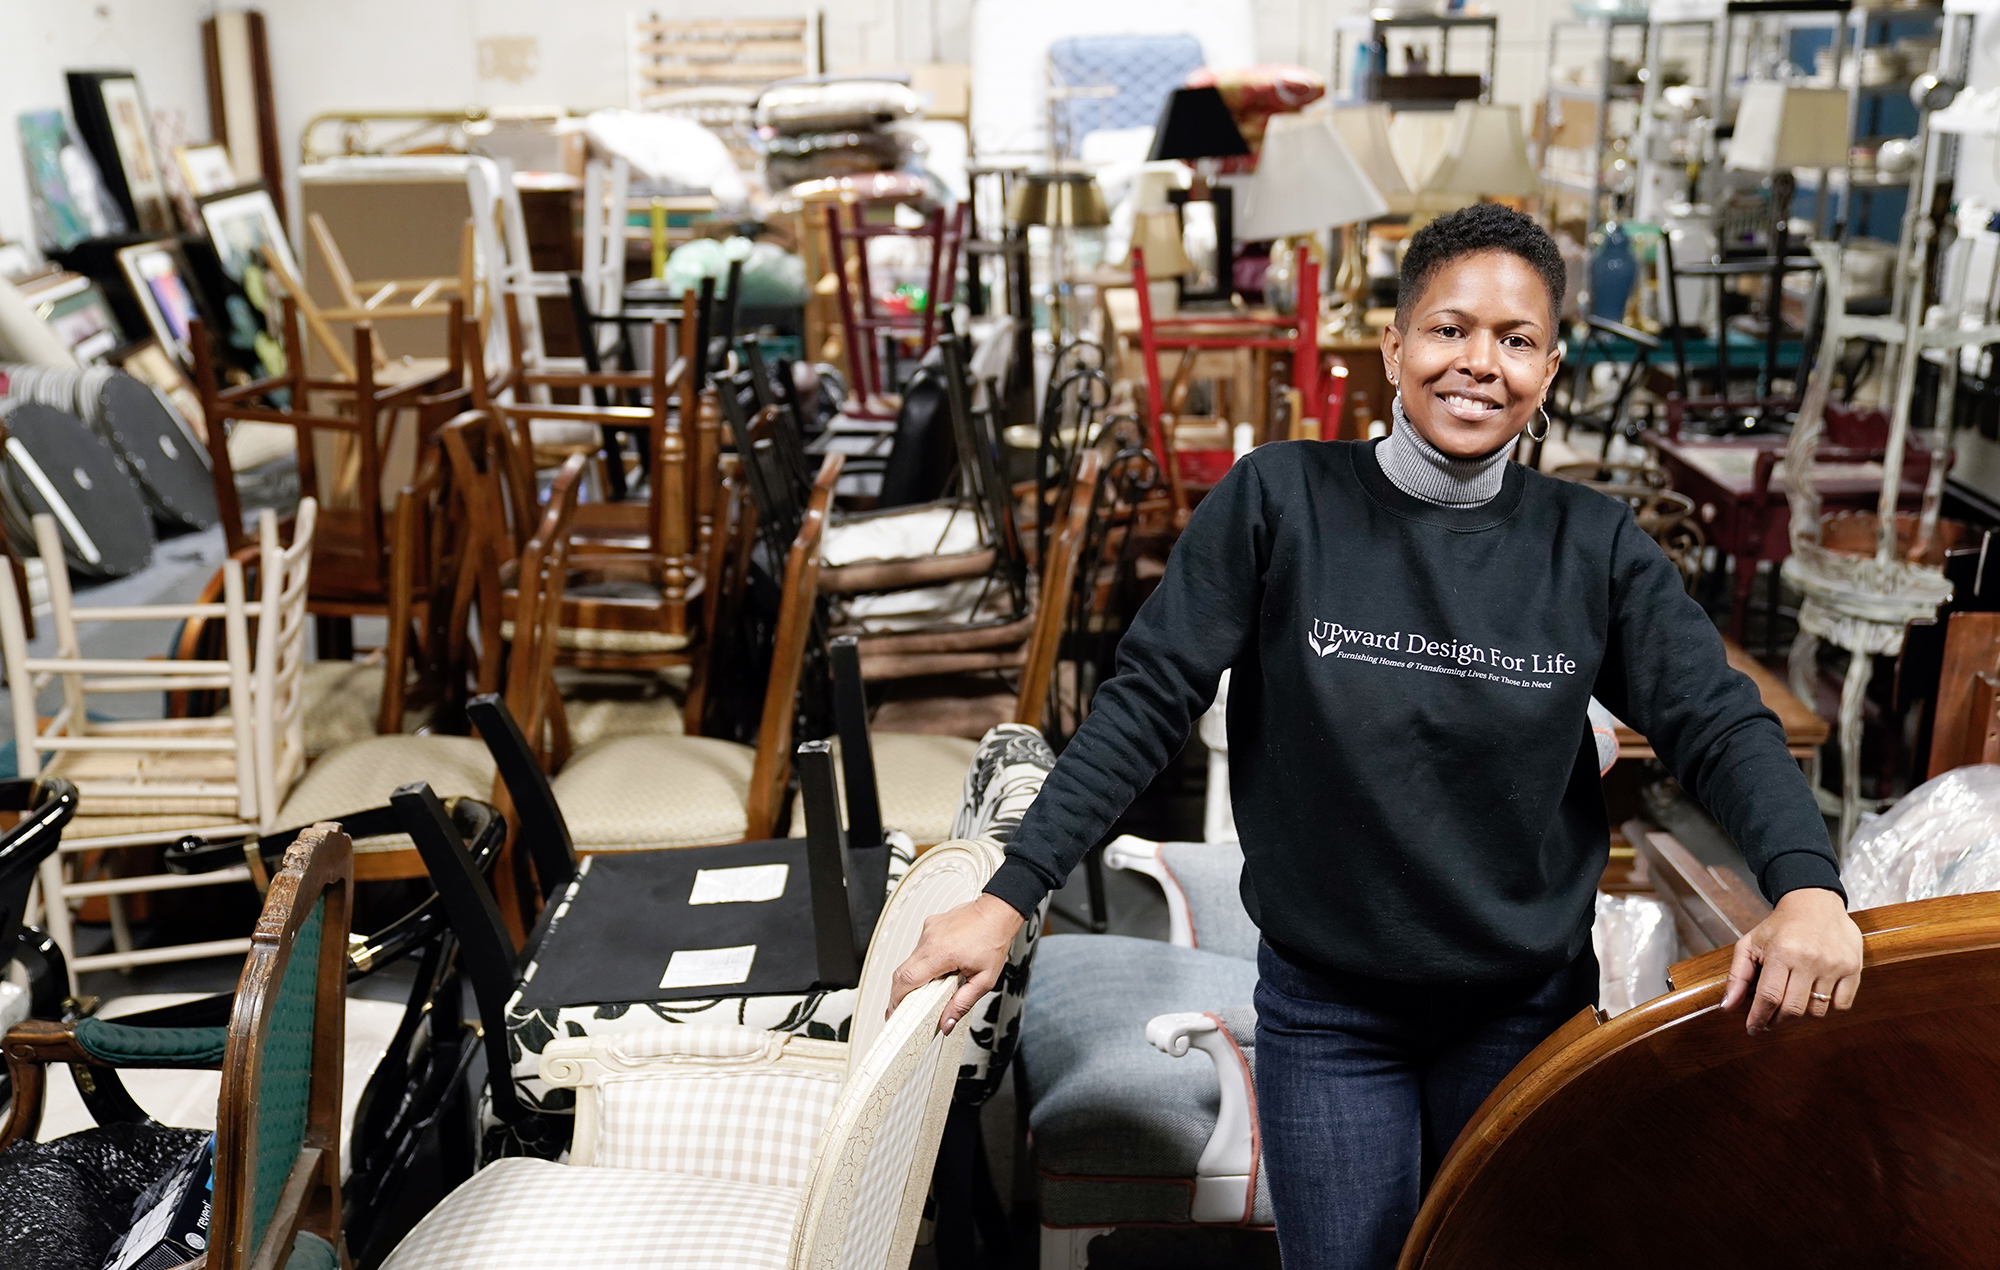 Spreading hope by transforming living spaces | Buffalo Magazine